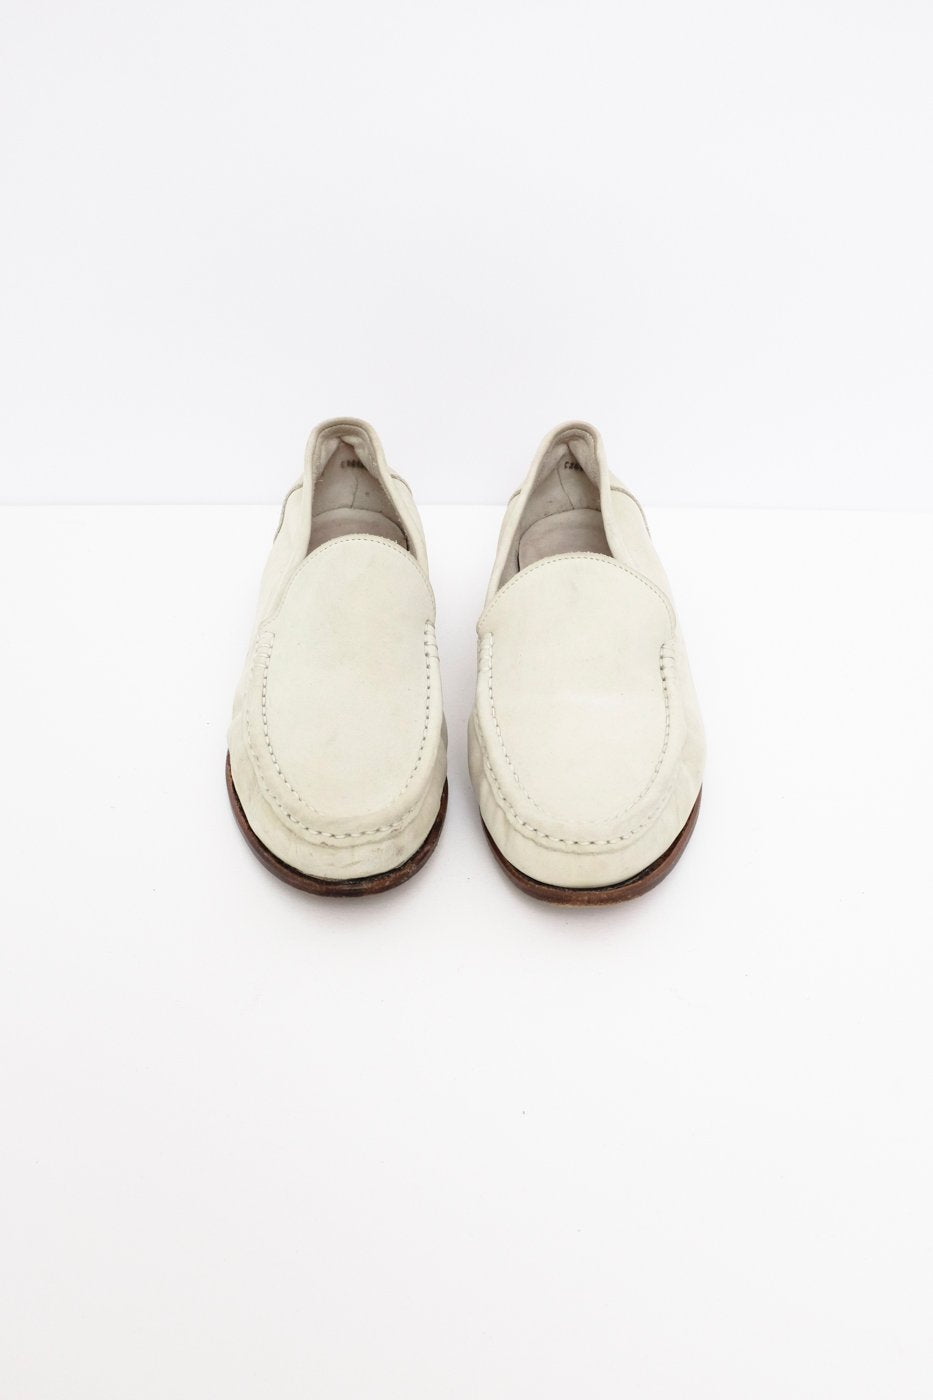 0415_BALLY NUDE MINT SUEDE LEATHER SLIPPER